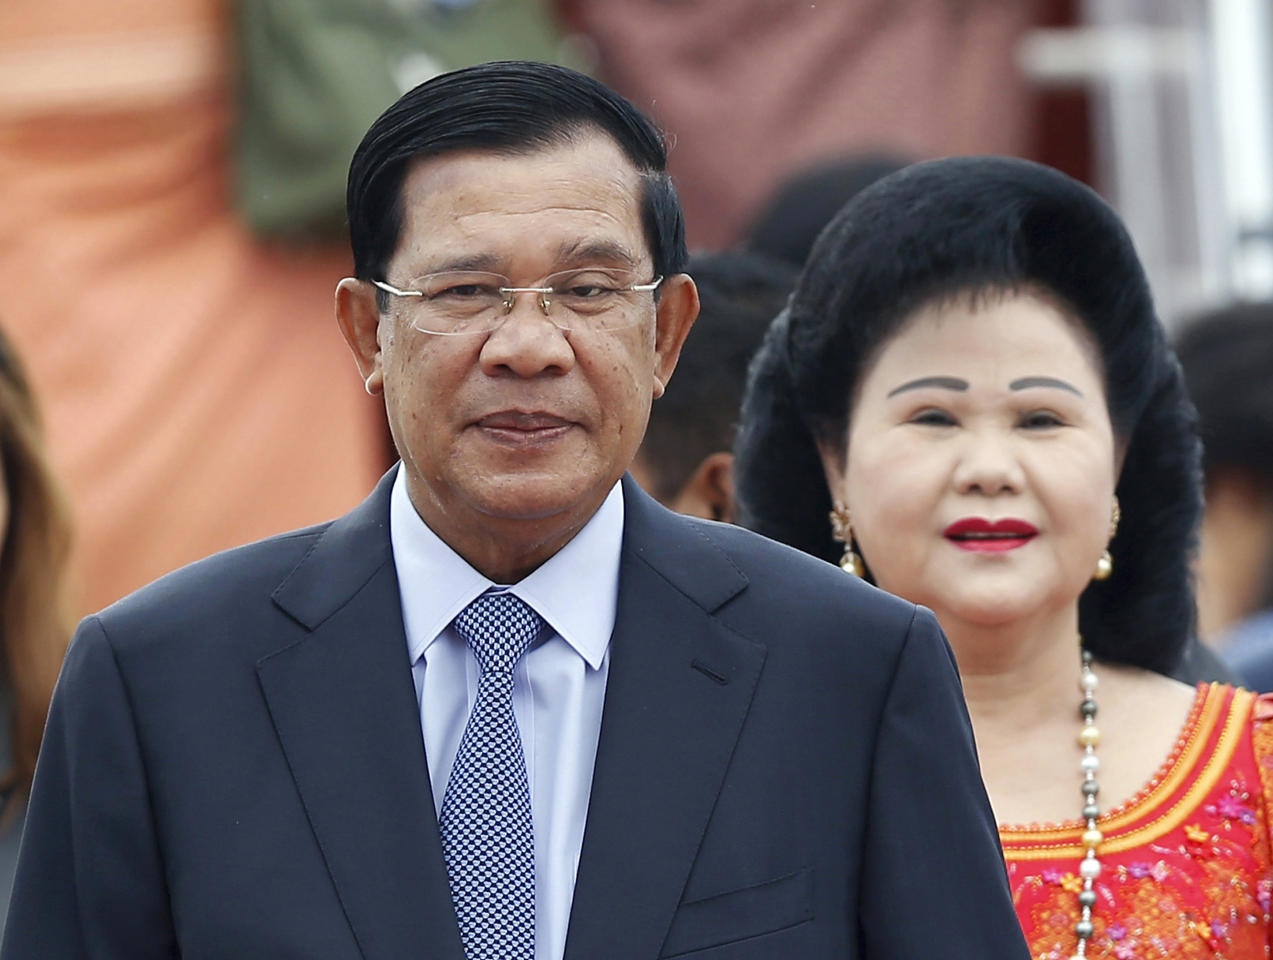 <p> RETRANSMISSION WITH CORRECT SLUG - FILE - In this Nov. 20, 2015 file photo, Cambodia's Prime Minister Hun Sen and his wife Bun Rany arrive for the 27th Association of Southeast Asian Nations (ASEAN) summit, in Sepang, Malaysia. An extensive network of businesses controlled by the family of Cambodia's longtime leader sustains and is sustained by his authoritarian rule, making foreign investment in the country risky, says a report issued Thursday, July 7, 2016 by the research and advocacy group Global Witness. (AP Photo/Lai Seng Sin, File) </p>